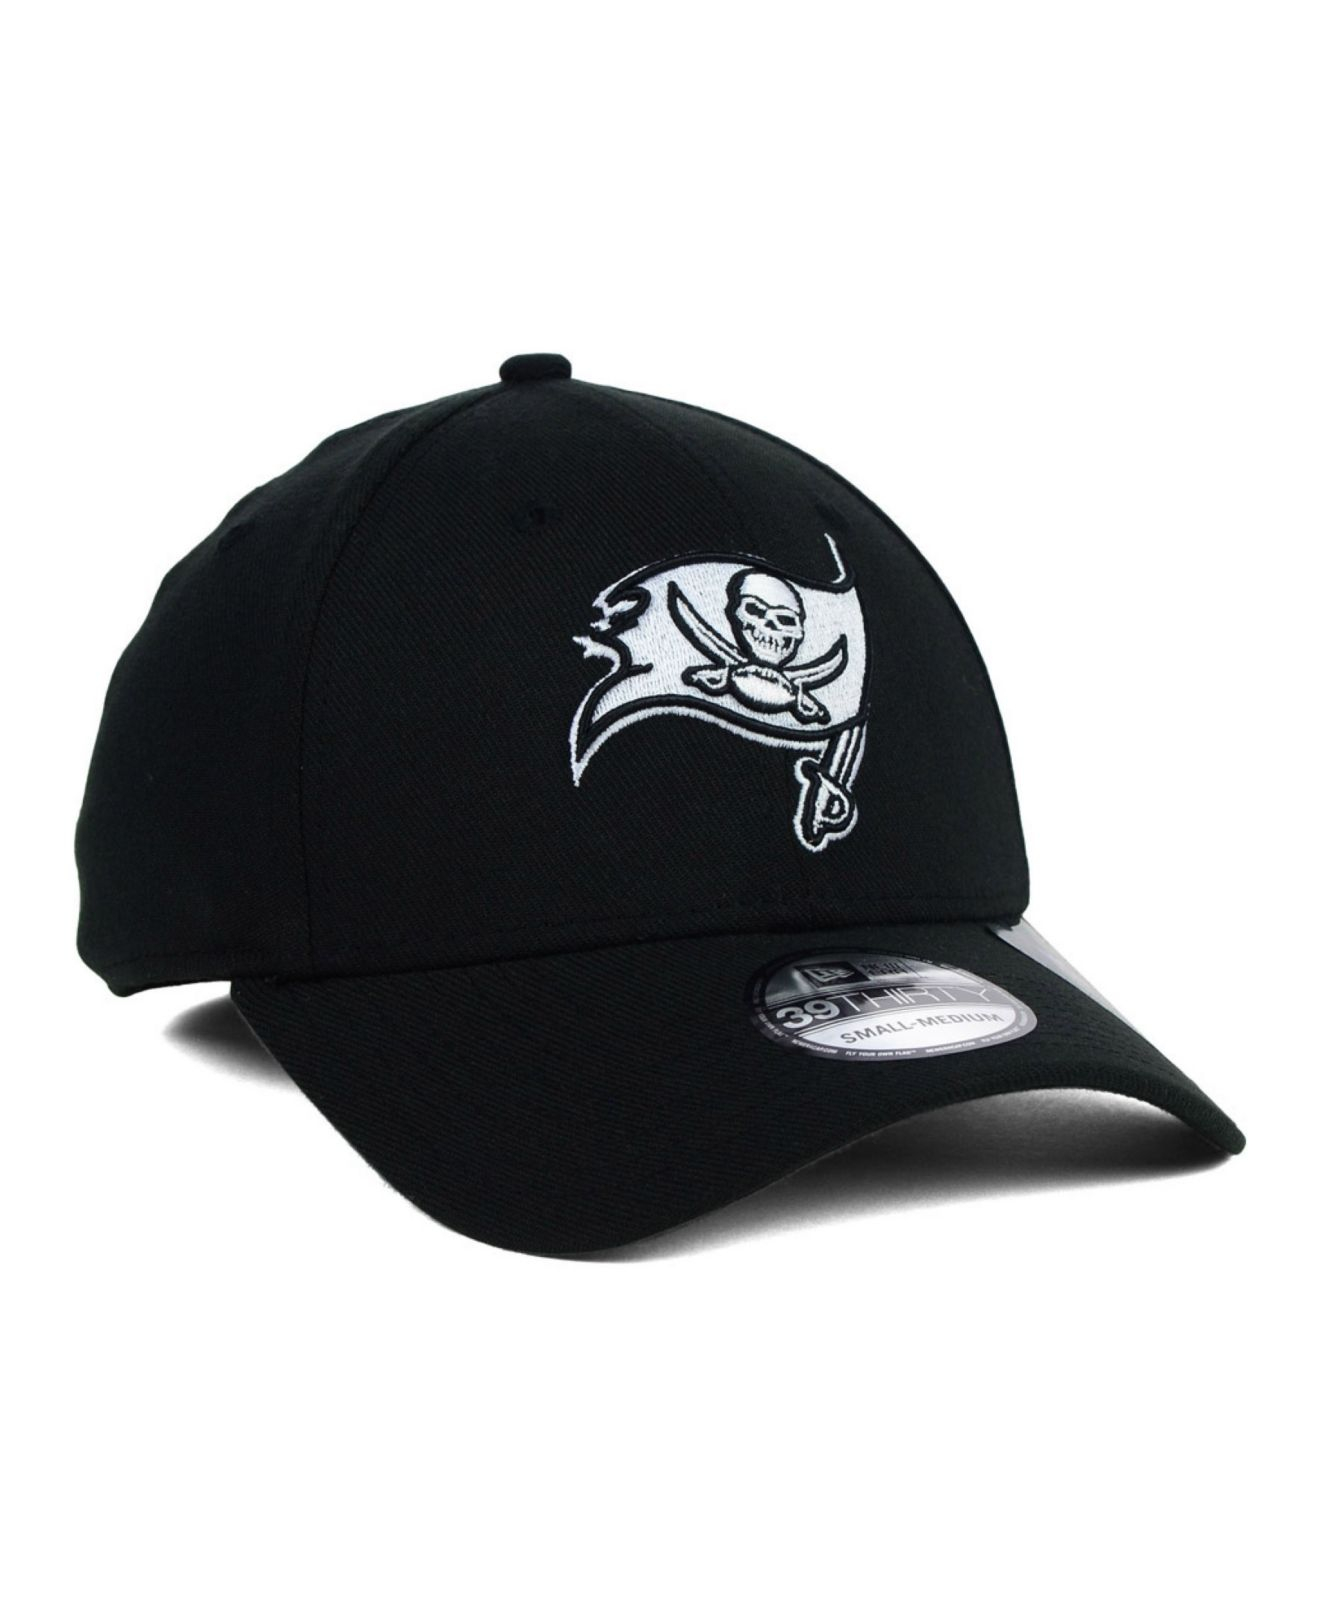 competitive price bb90c 8f638 Lyst - KTZ Tampa Bay Buccaneers Black And White Classic 39Thirty Cap ...